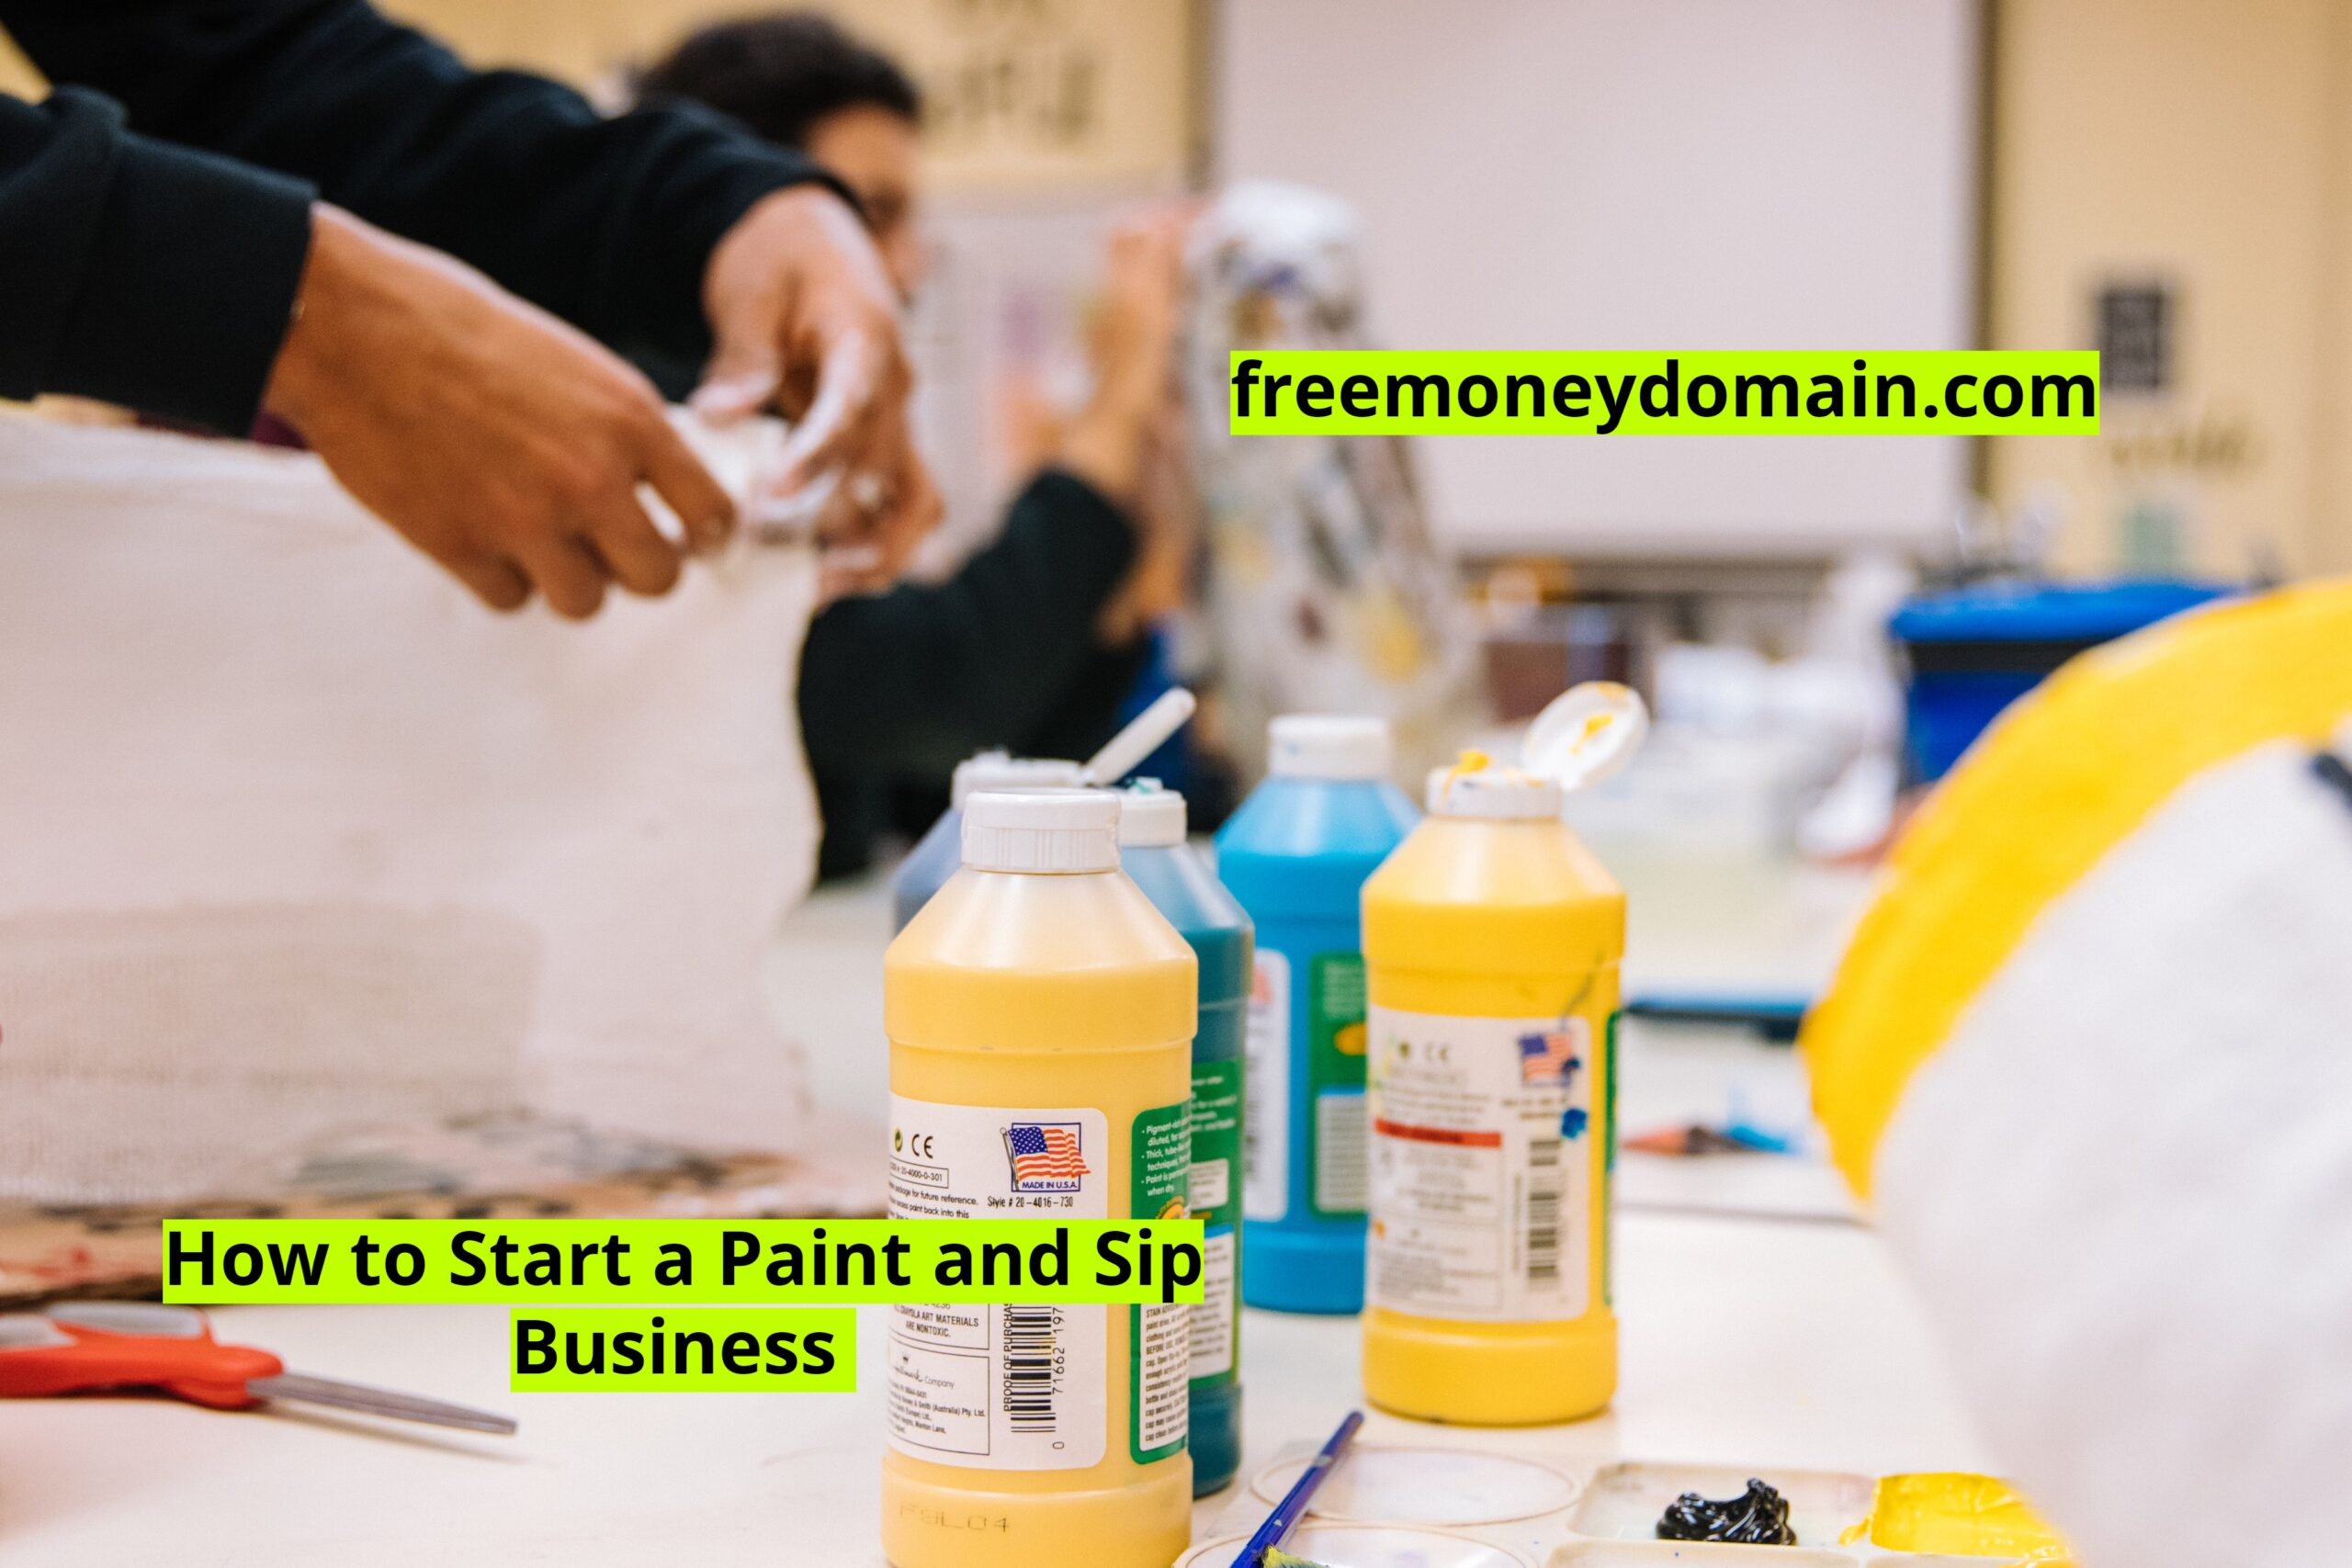 How to Start a Paint and Sip Business in 2021